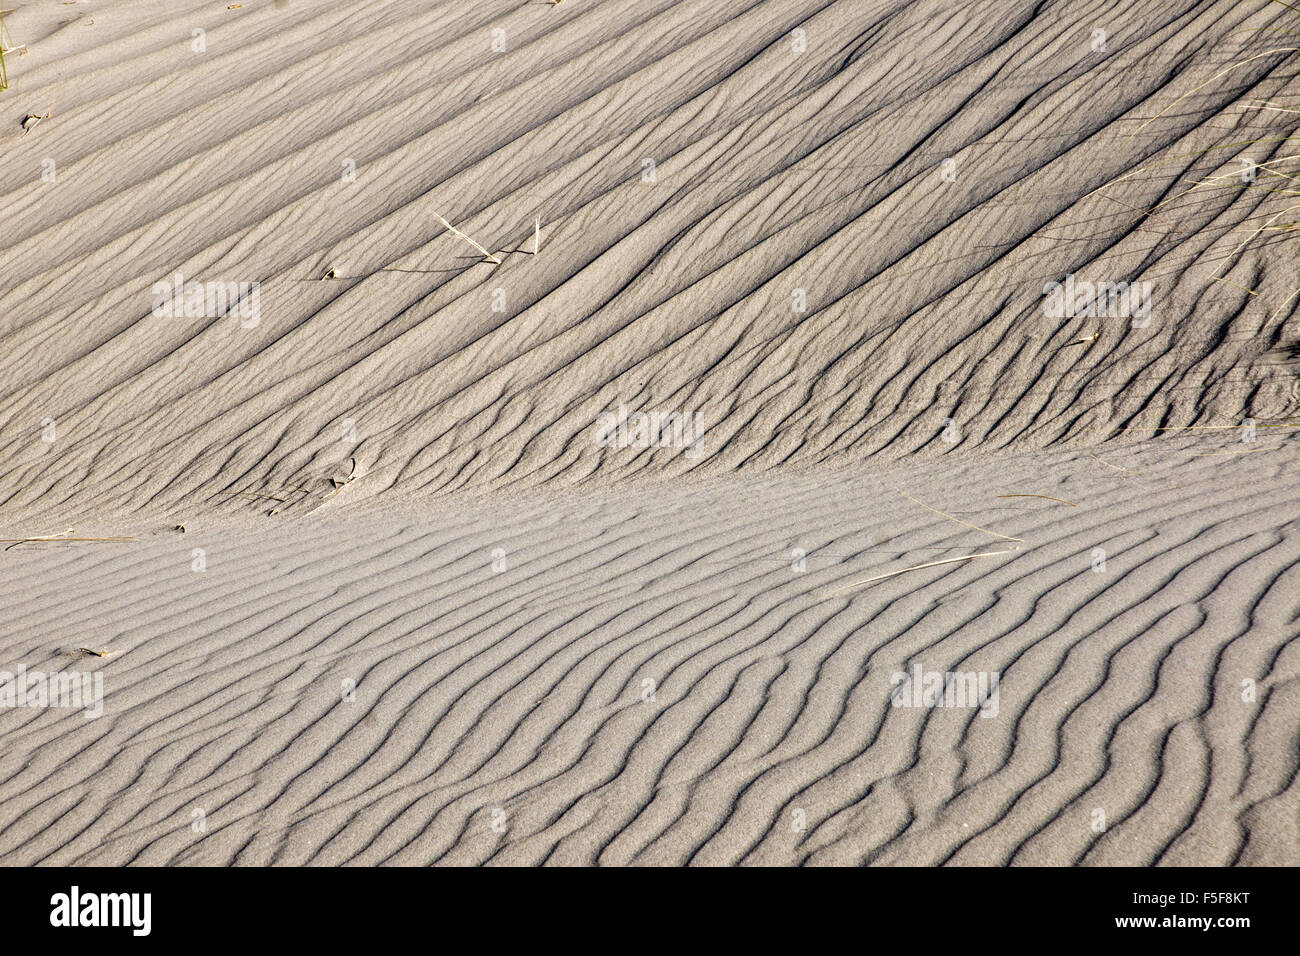 A rippled sand dune with some marram grass - Stock Image